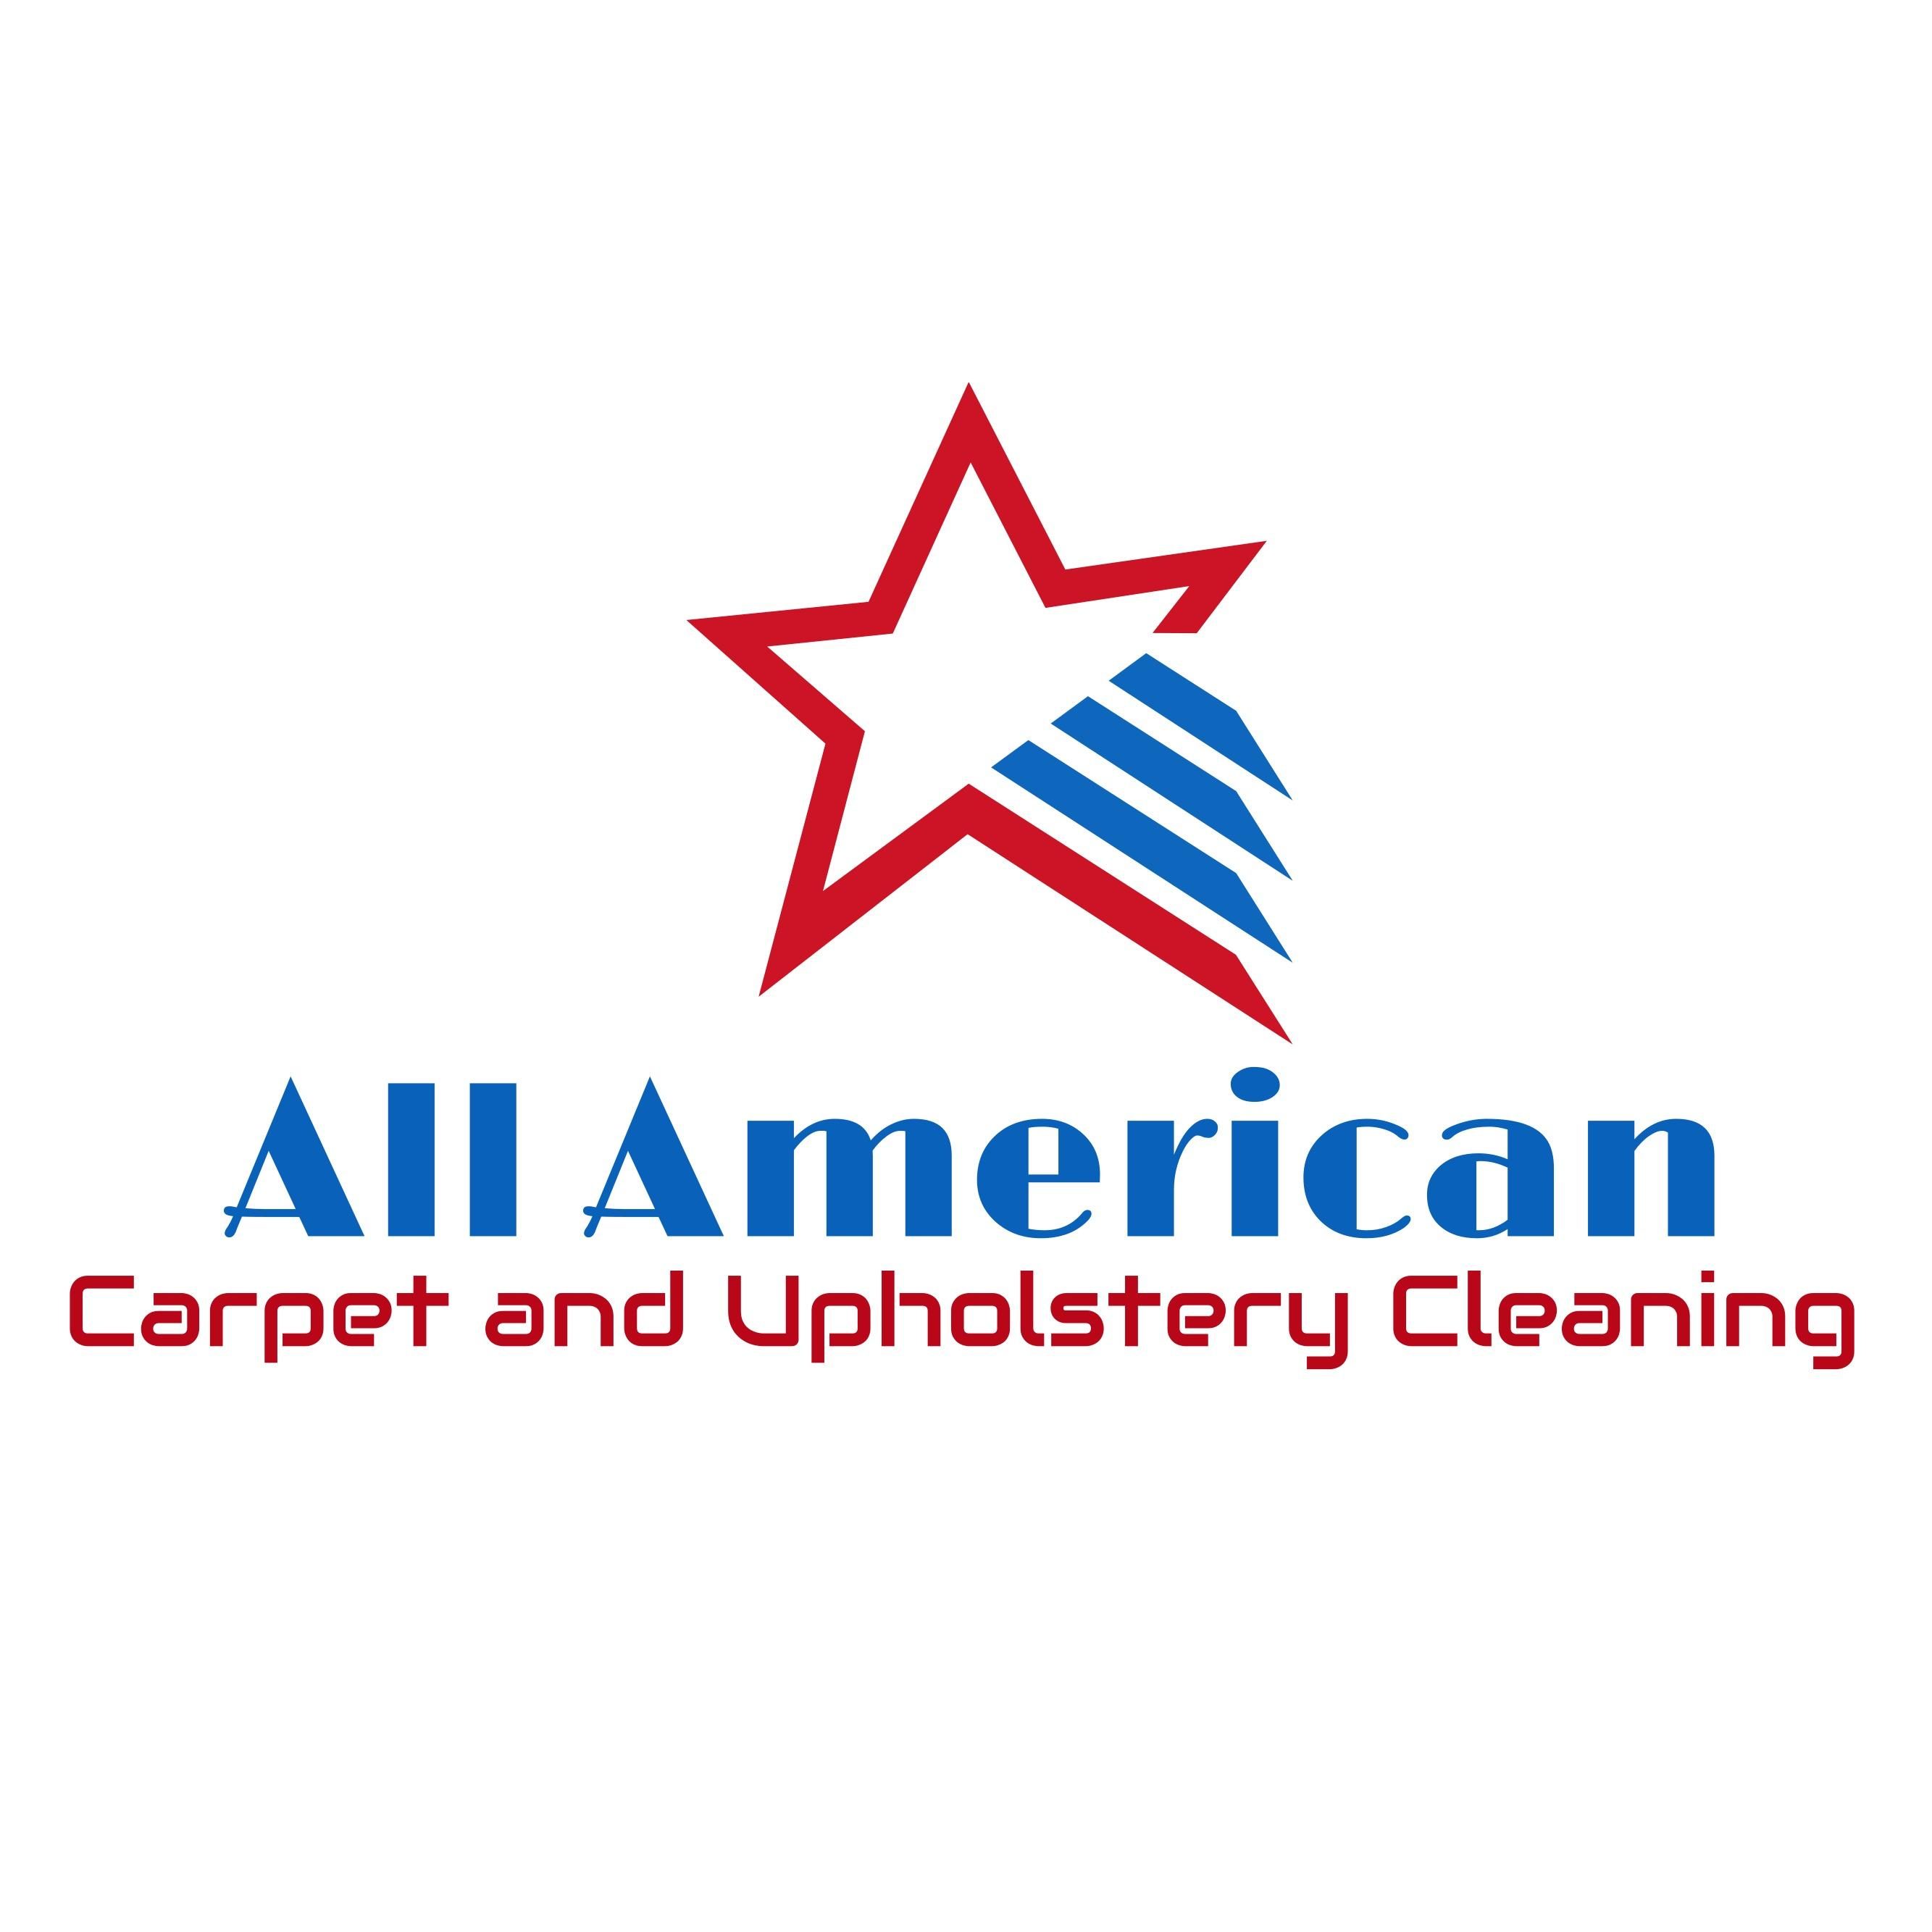 All American Carpet Cleaning and Upholstery Cleaning